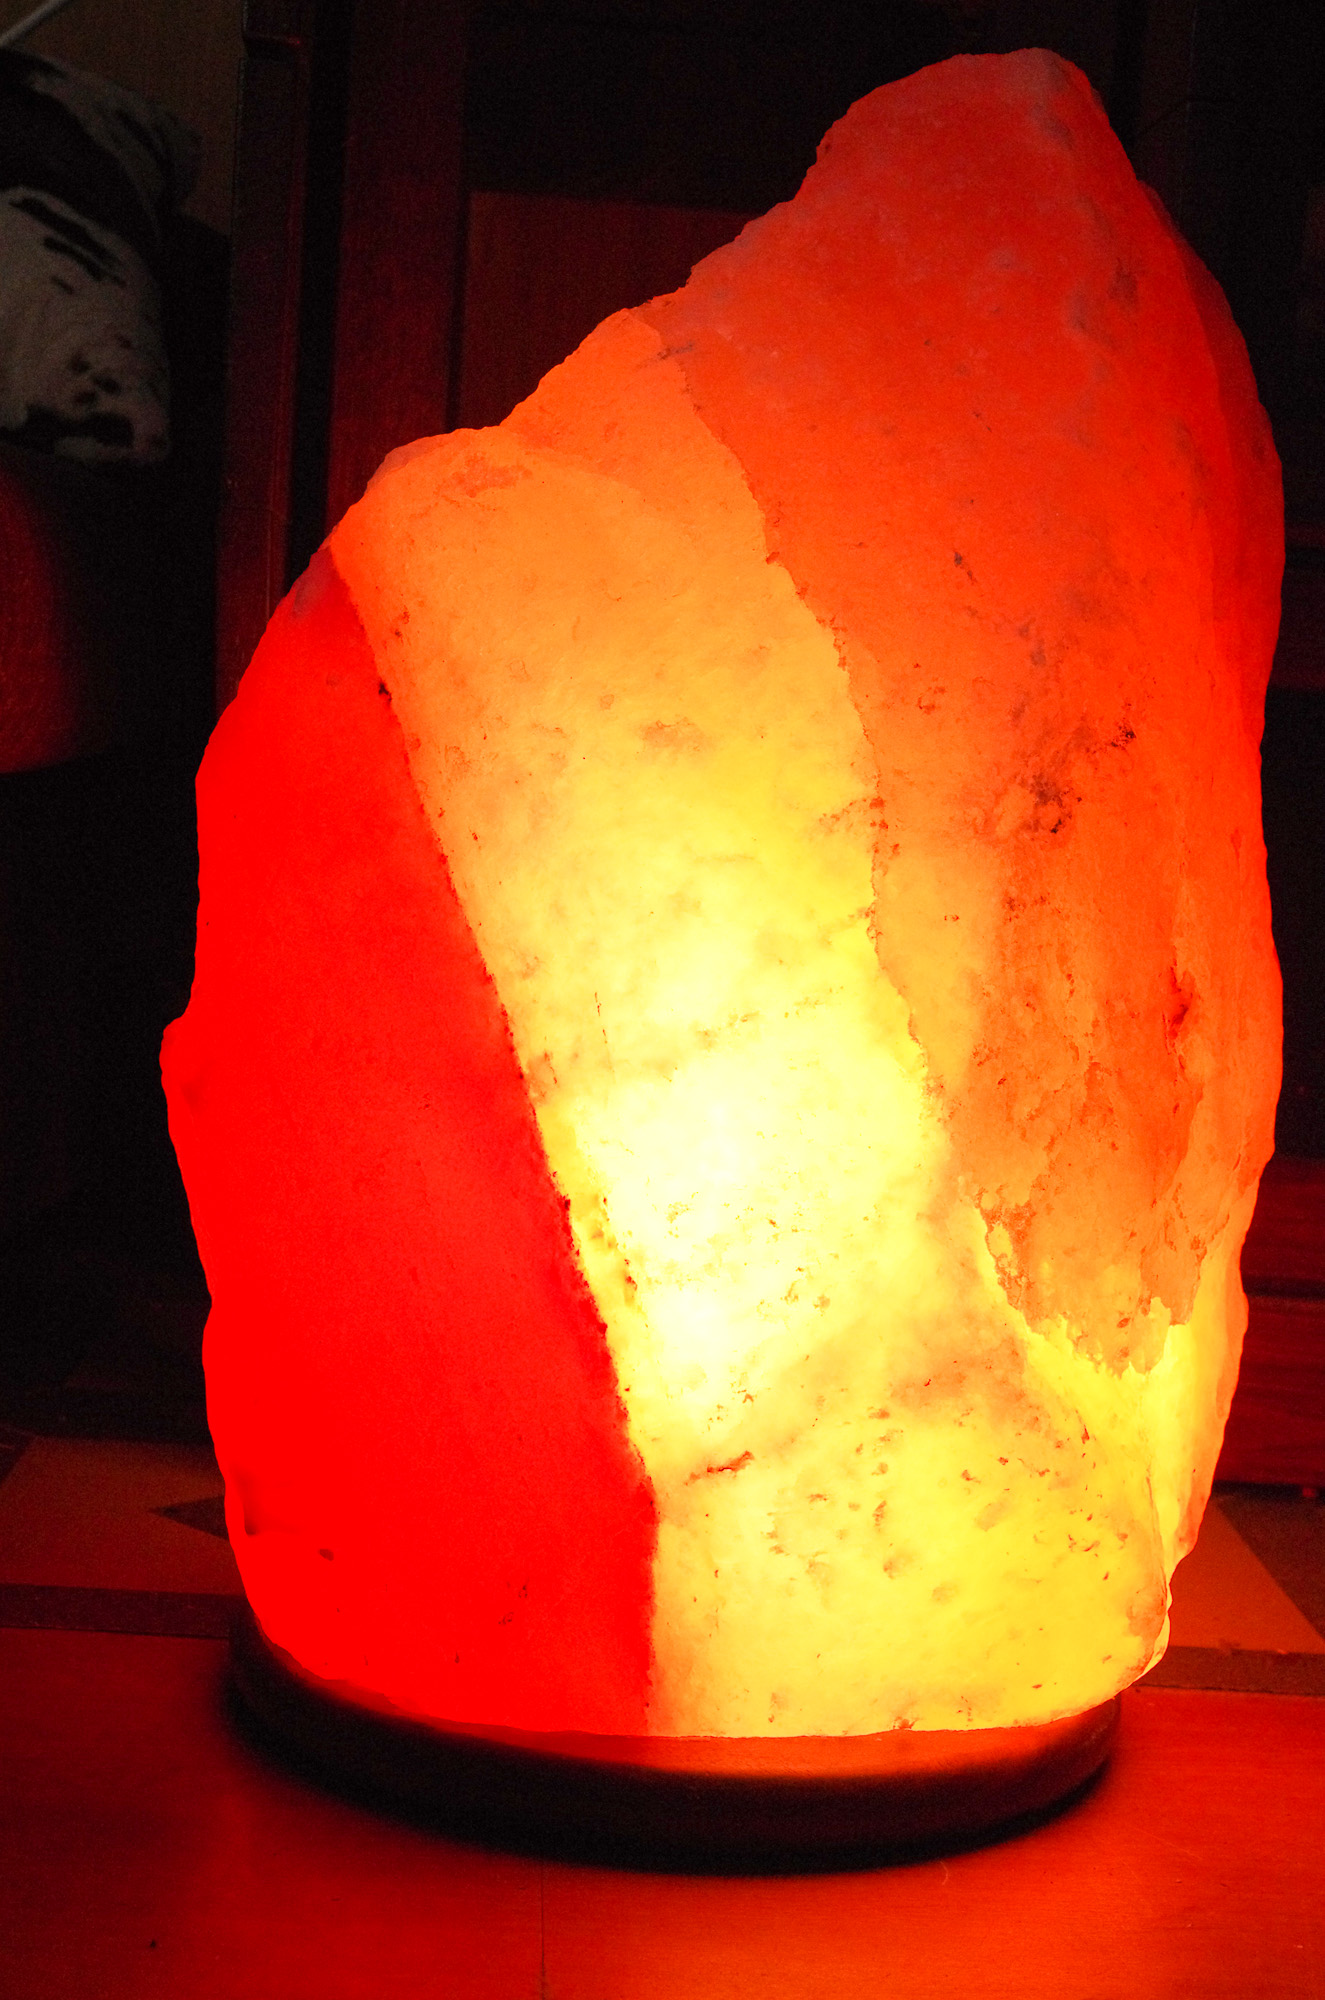 himalayan salt lamp benefits uses meridian peak hypnosis